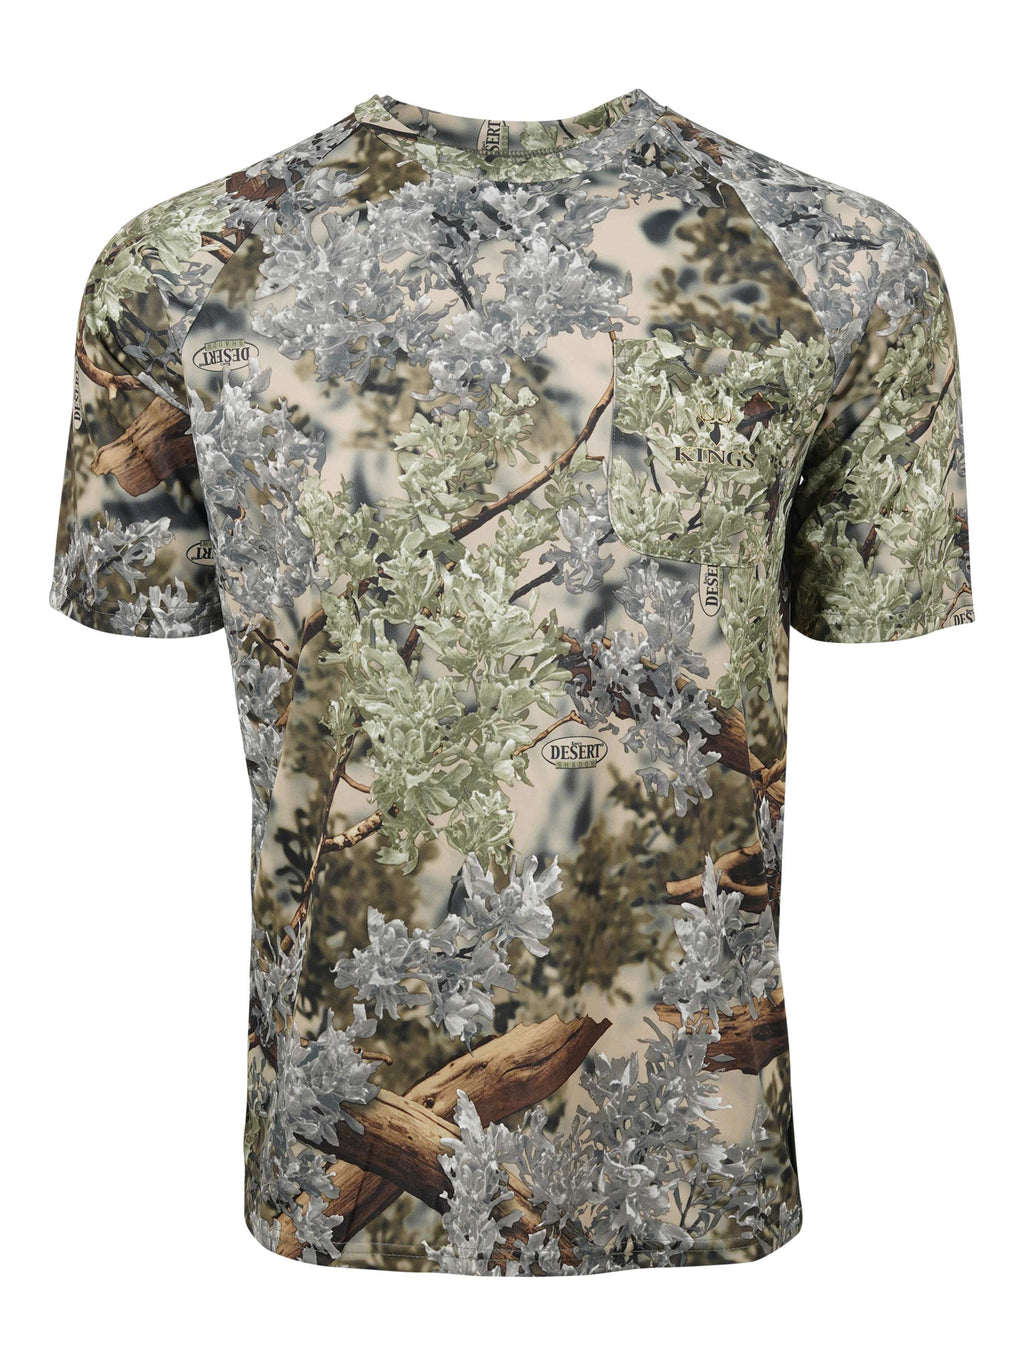 Hunter Series Short Sleeve Tee in Desert Shadow | King's Camo